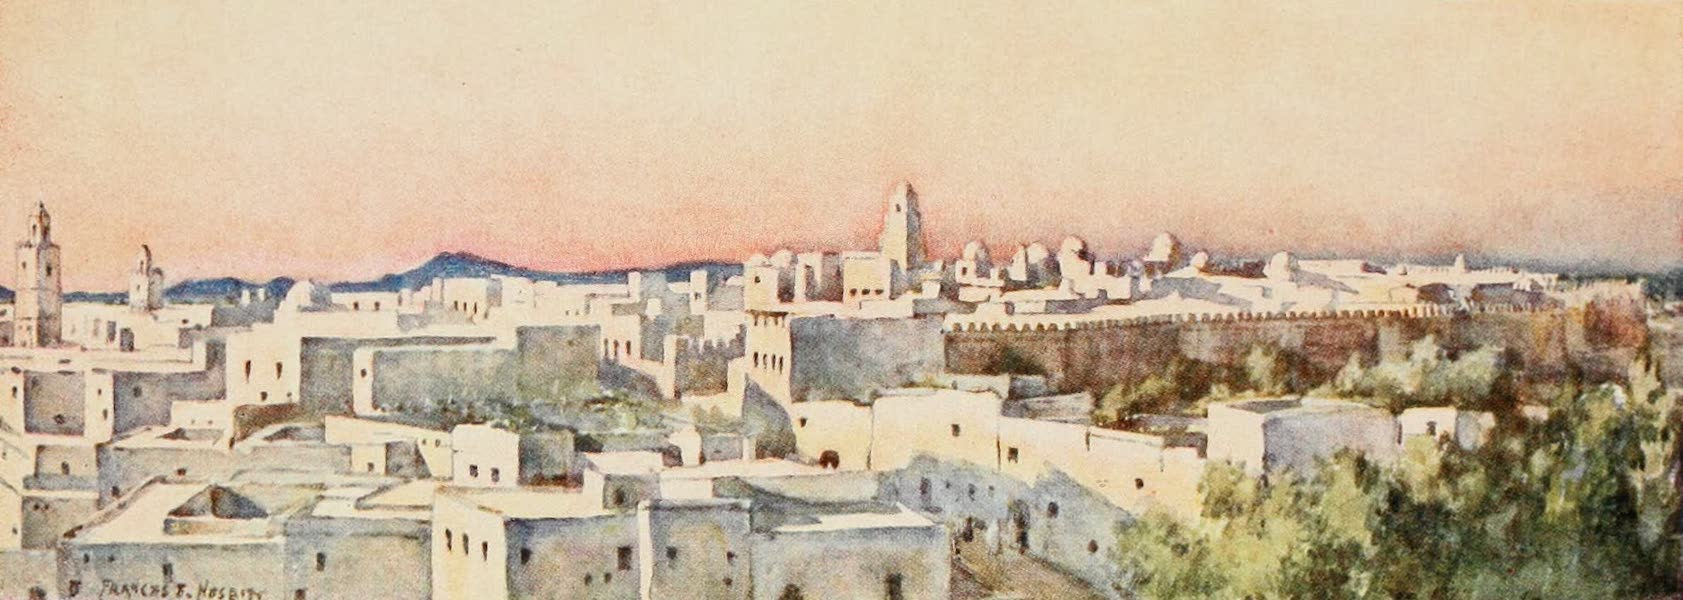 Algeria and Tunis, Painted and Described - Evening, Kairouan (1906)